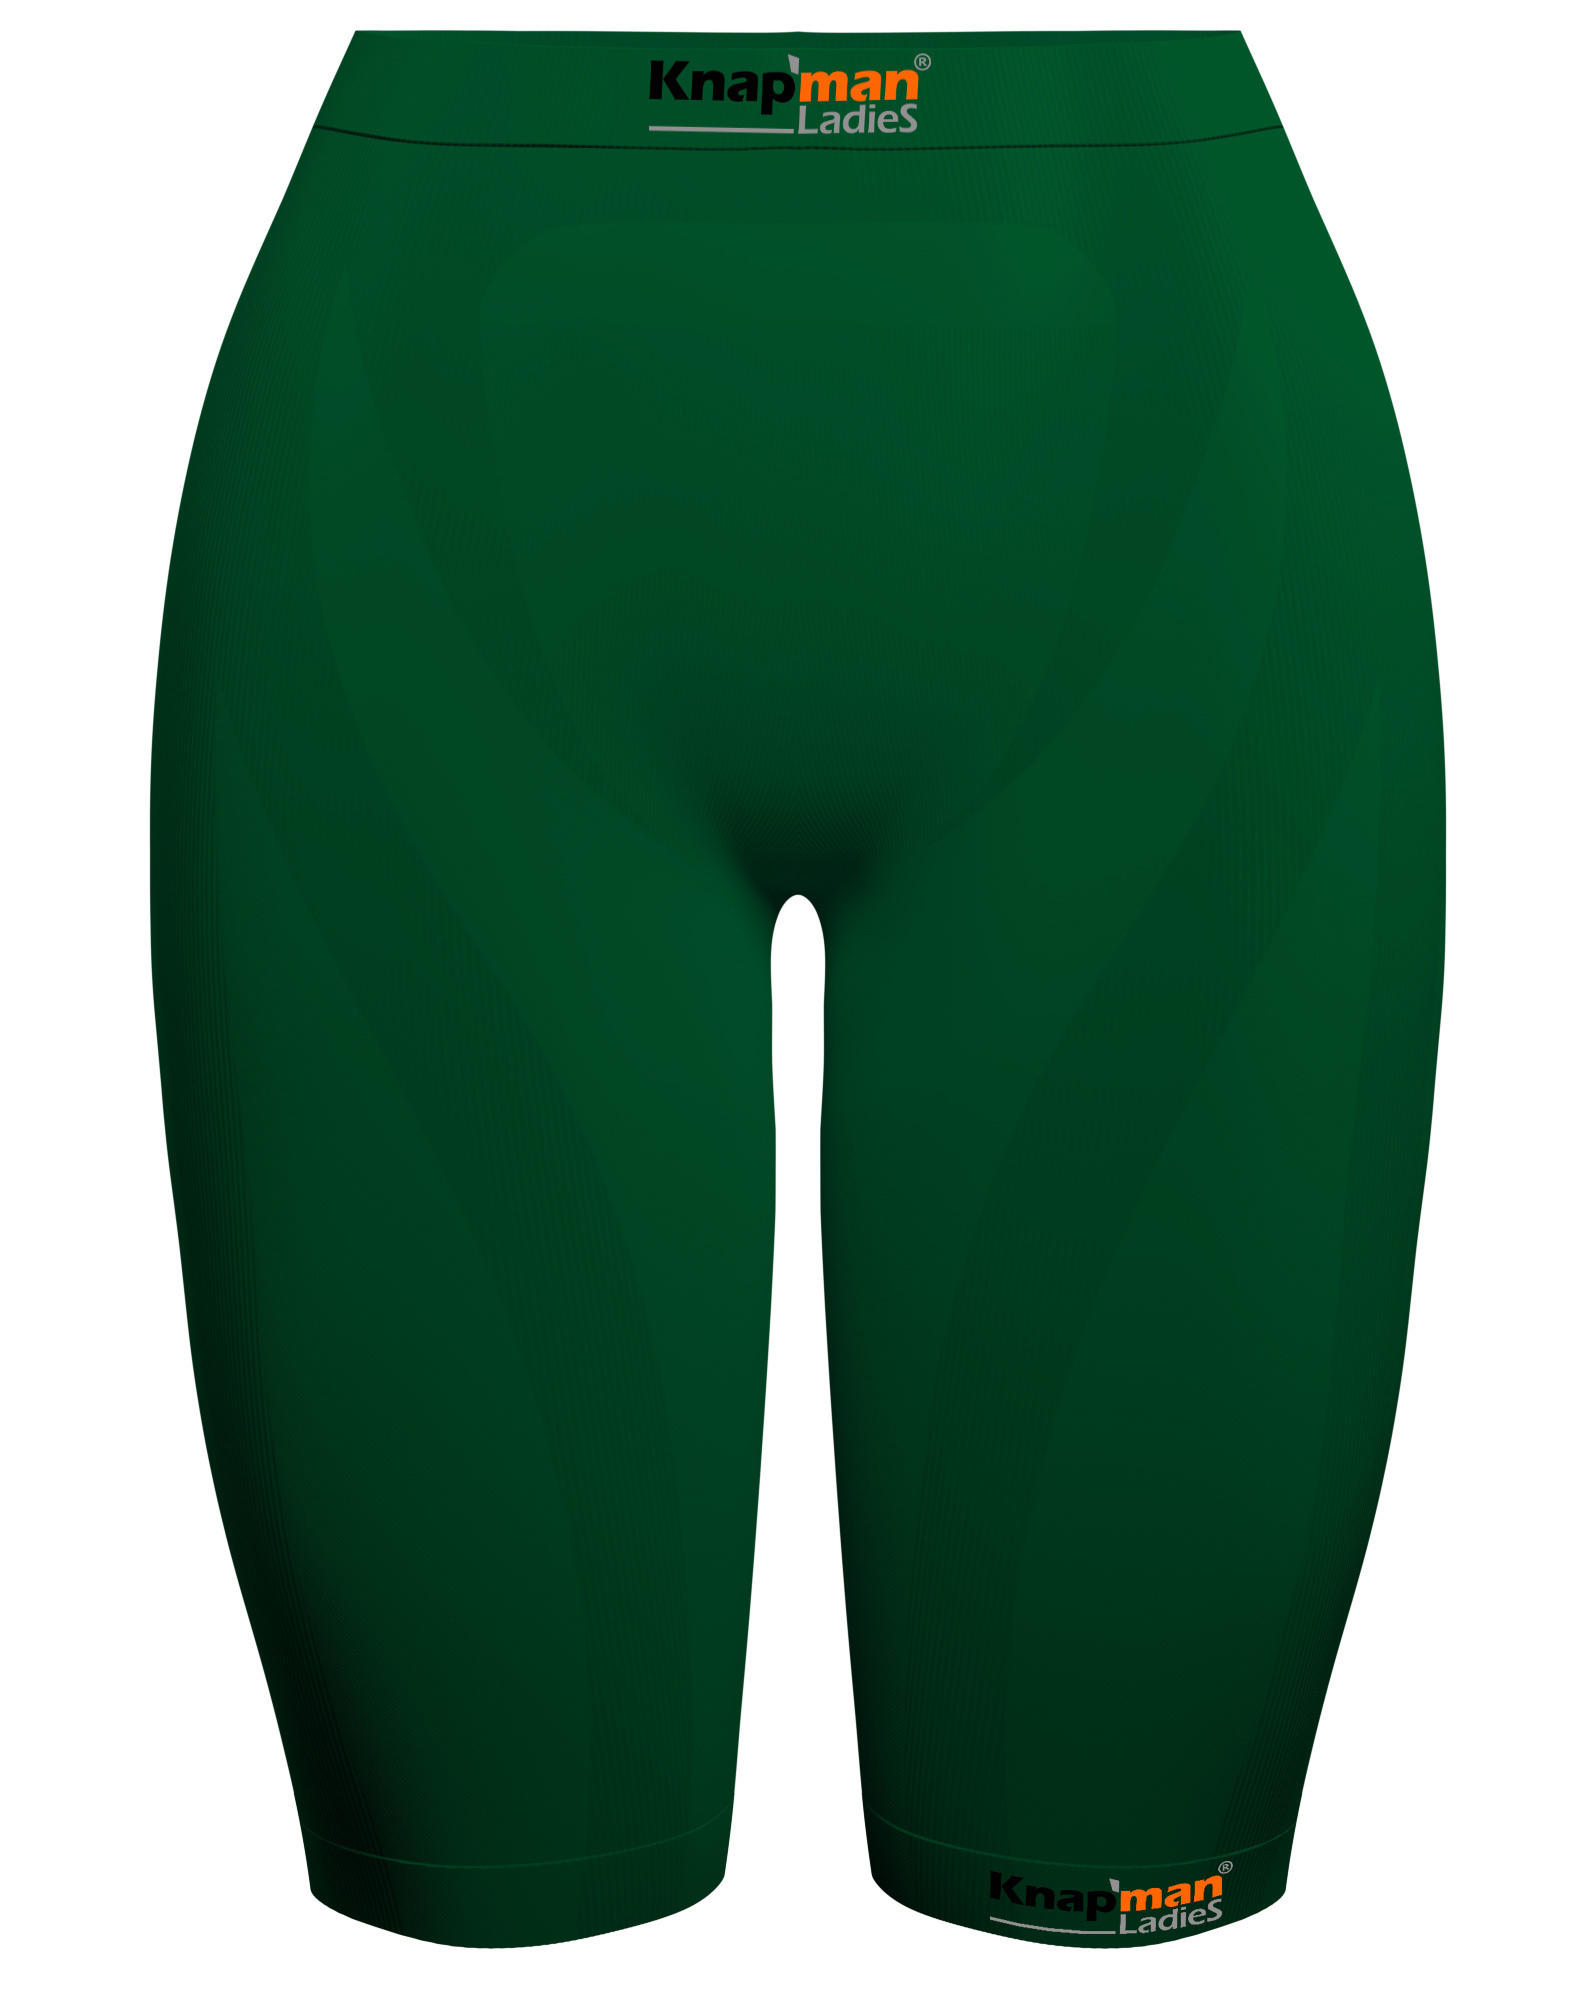 Knap'man Ladies Zoned Compression Short USP 45% groen